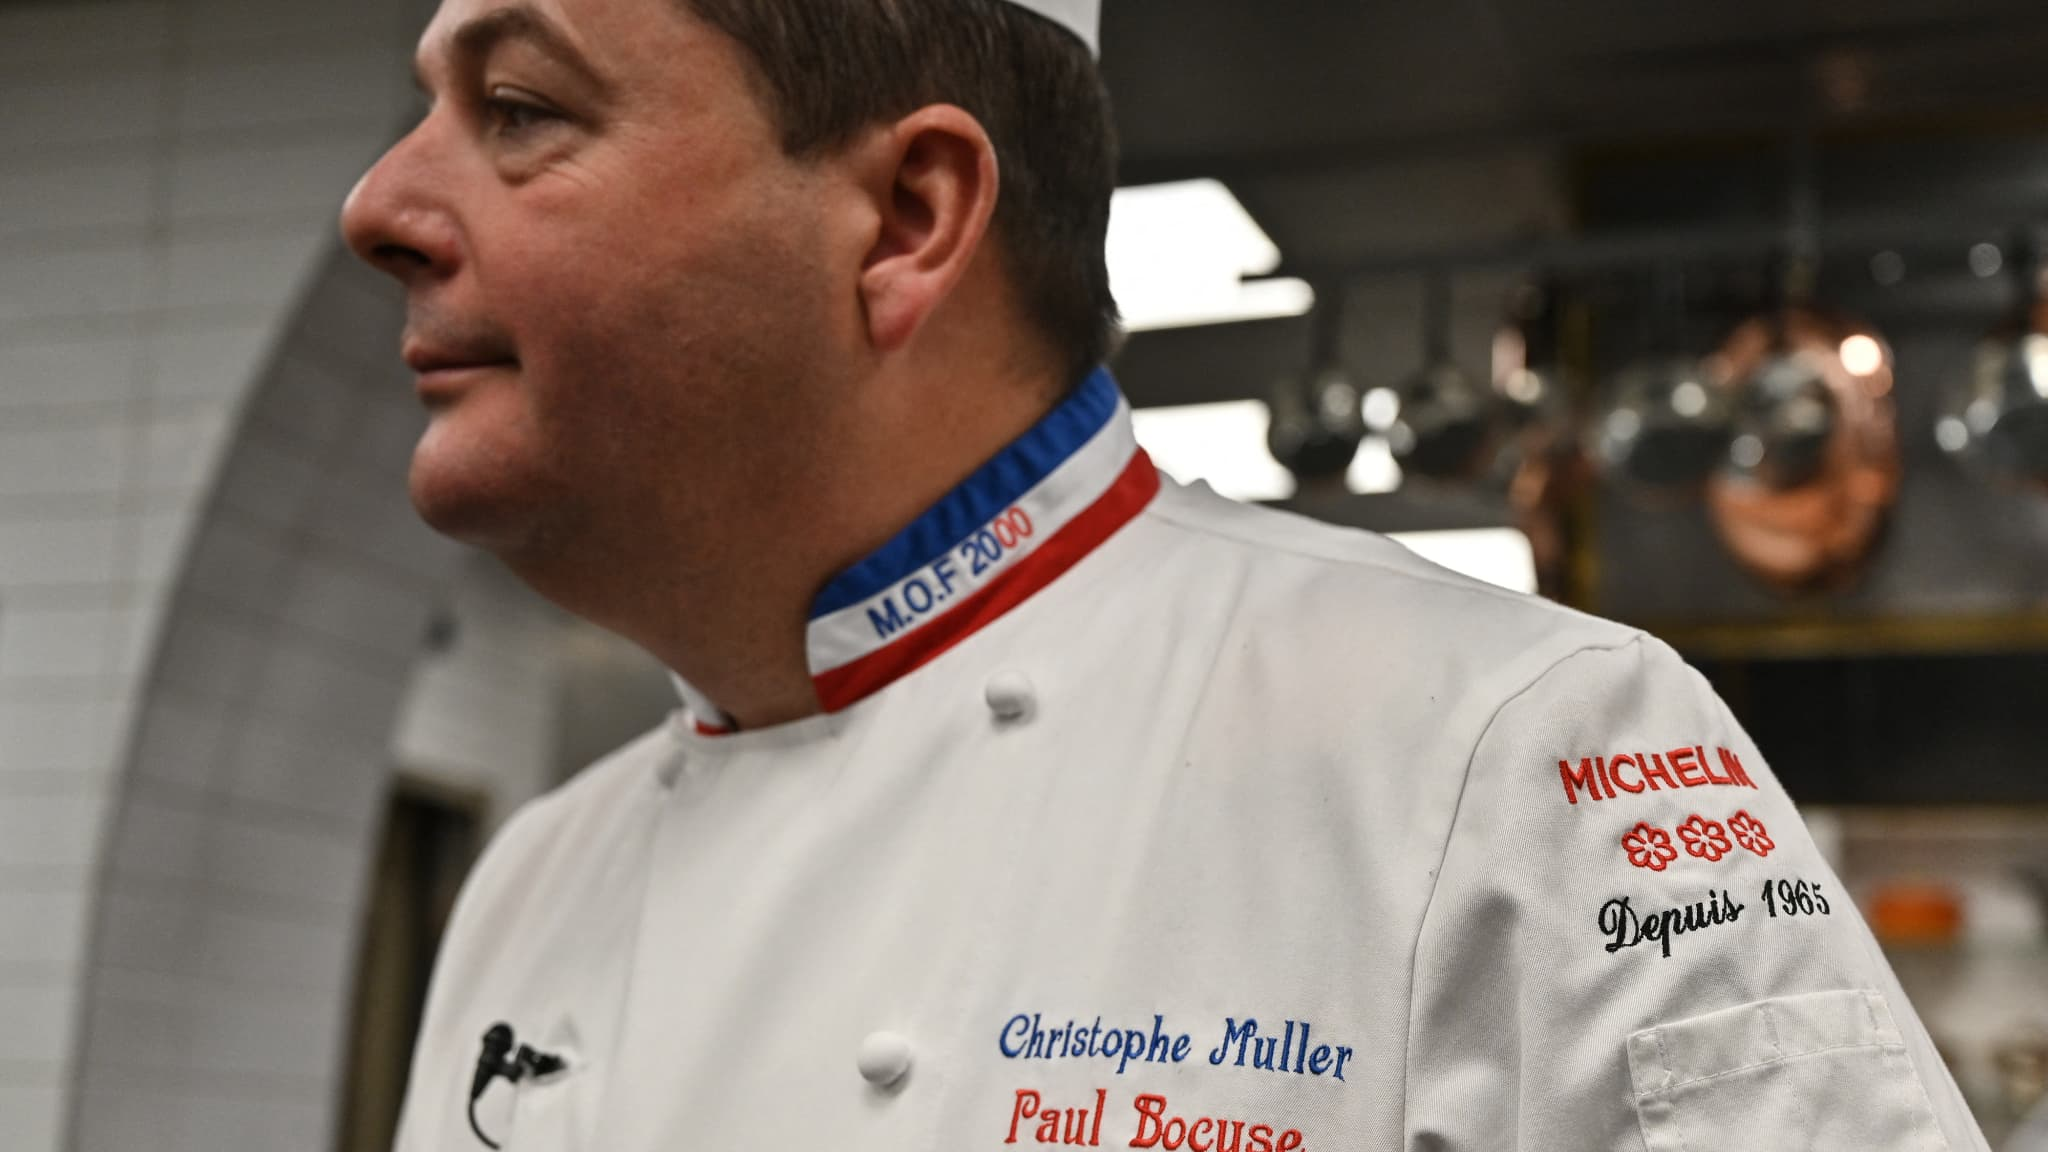 Christophe Muller, chef historique de Paul Bocuse, rend son tablier